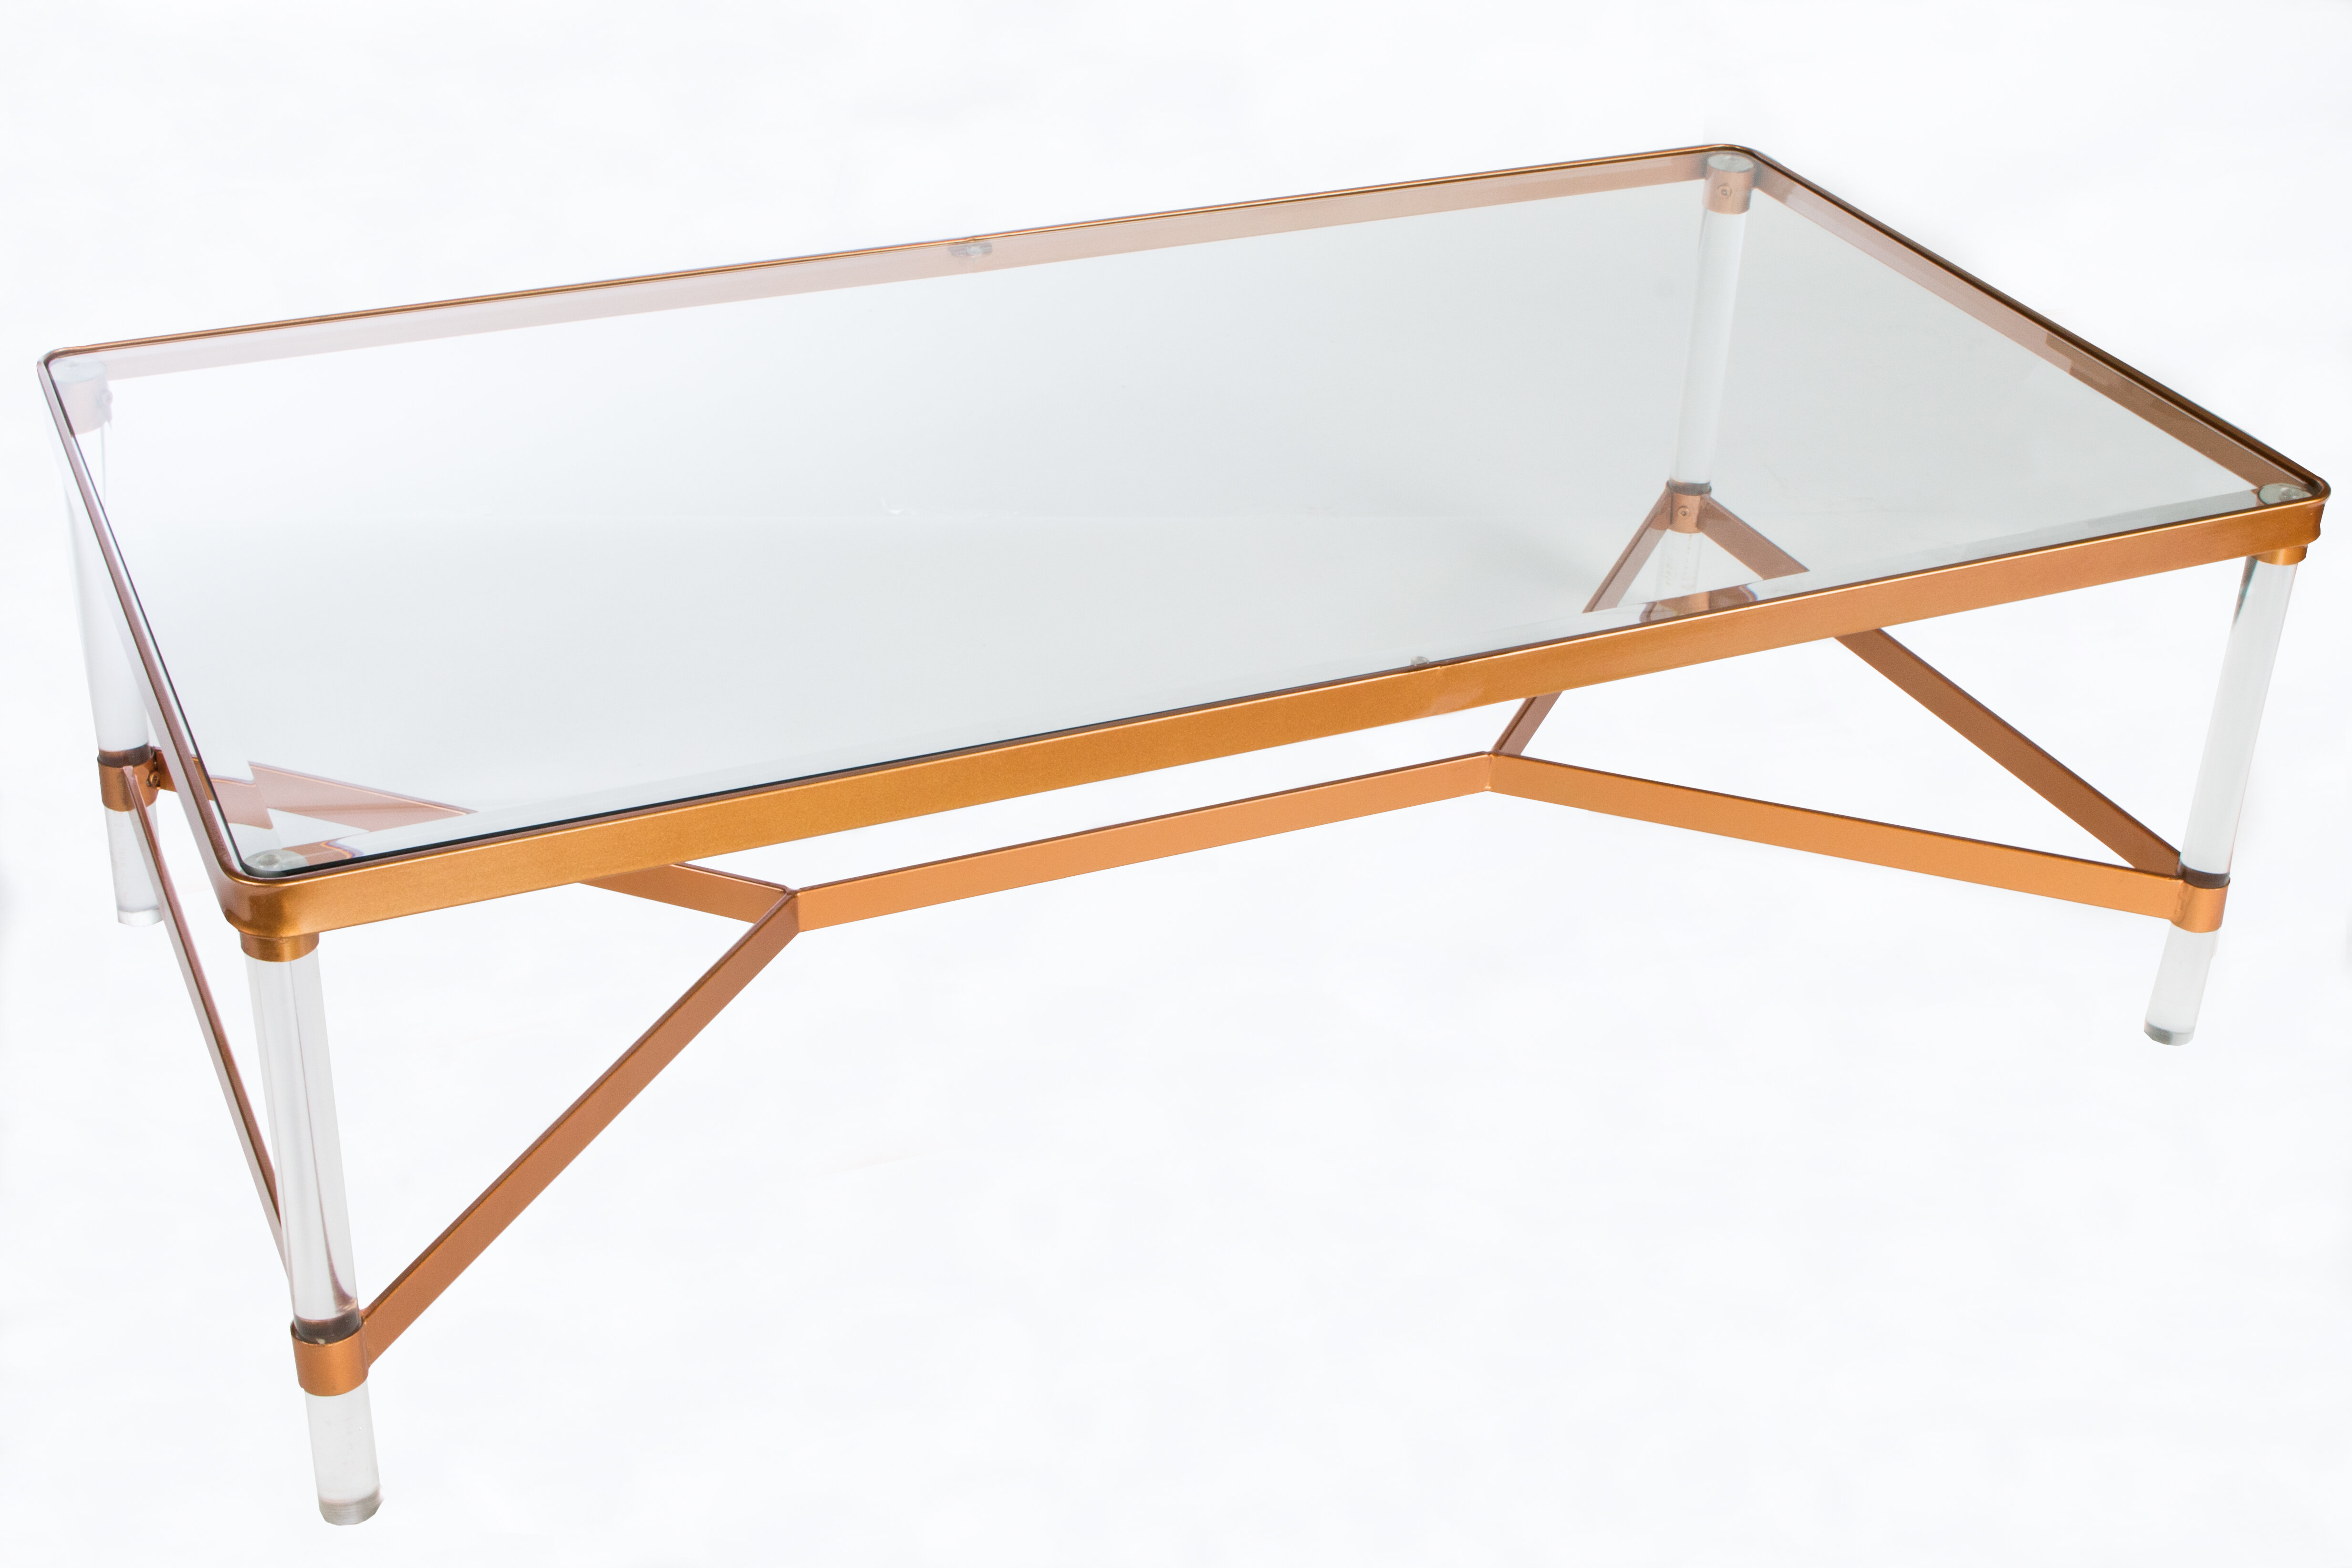 Charmant Statements By J Mireille Acrylic Coffee Table | Wayfair